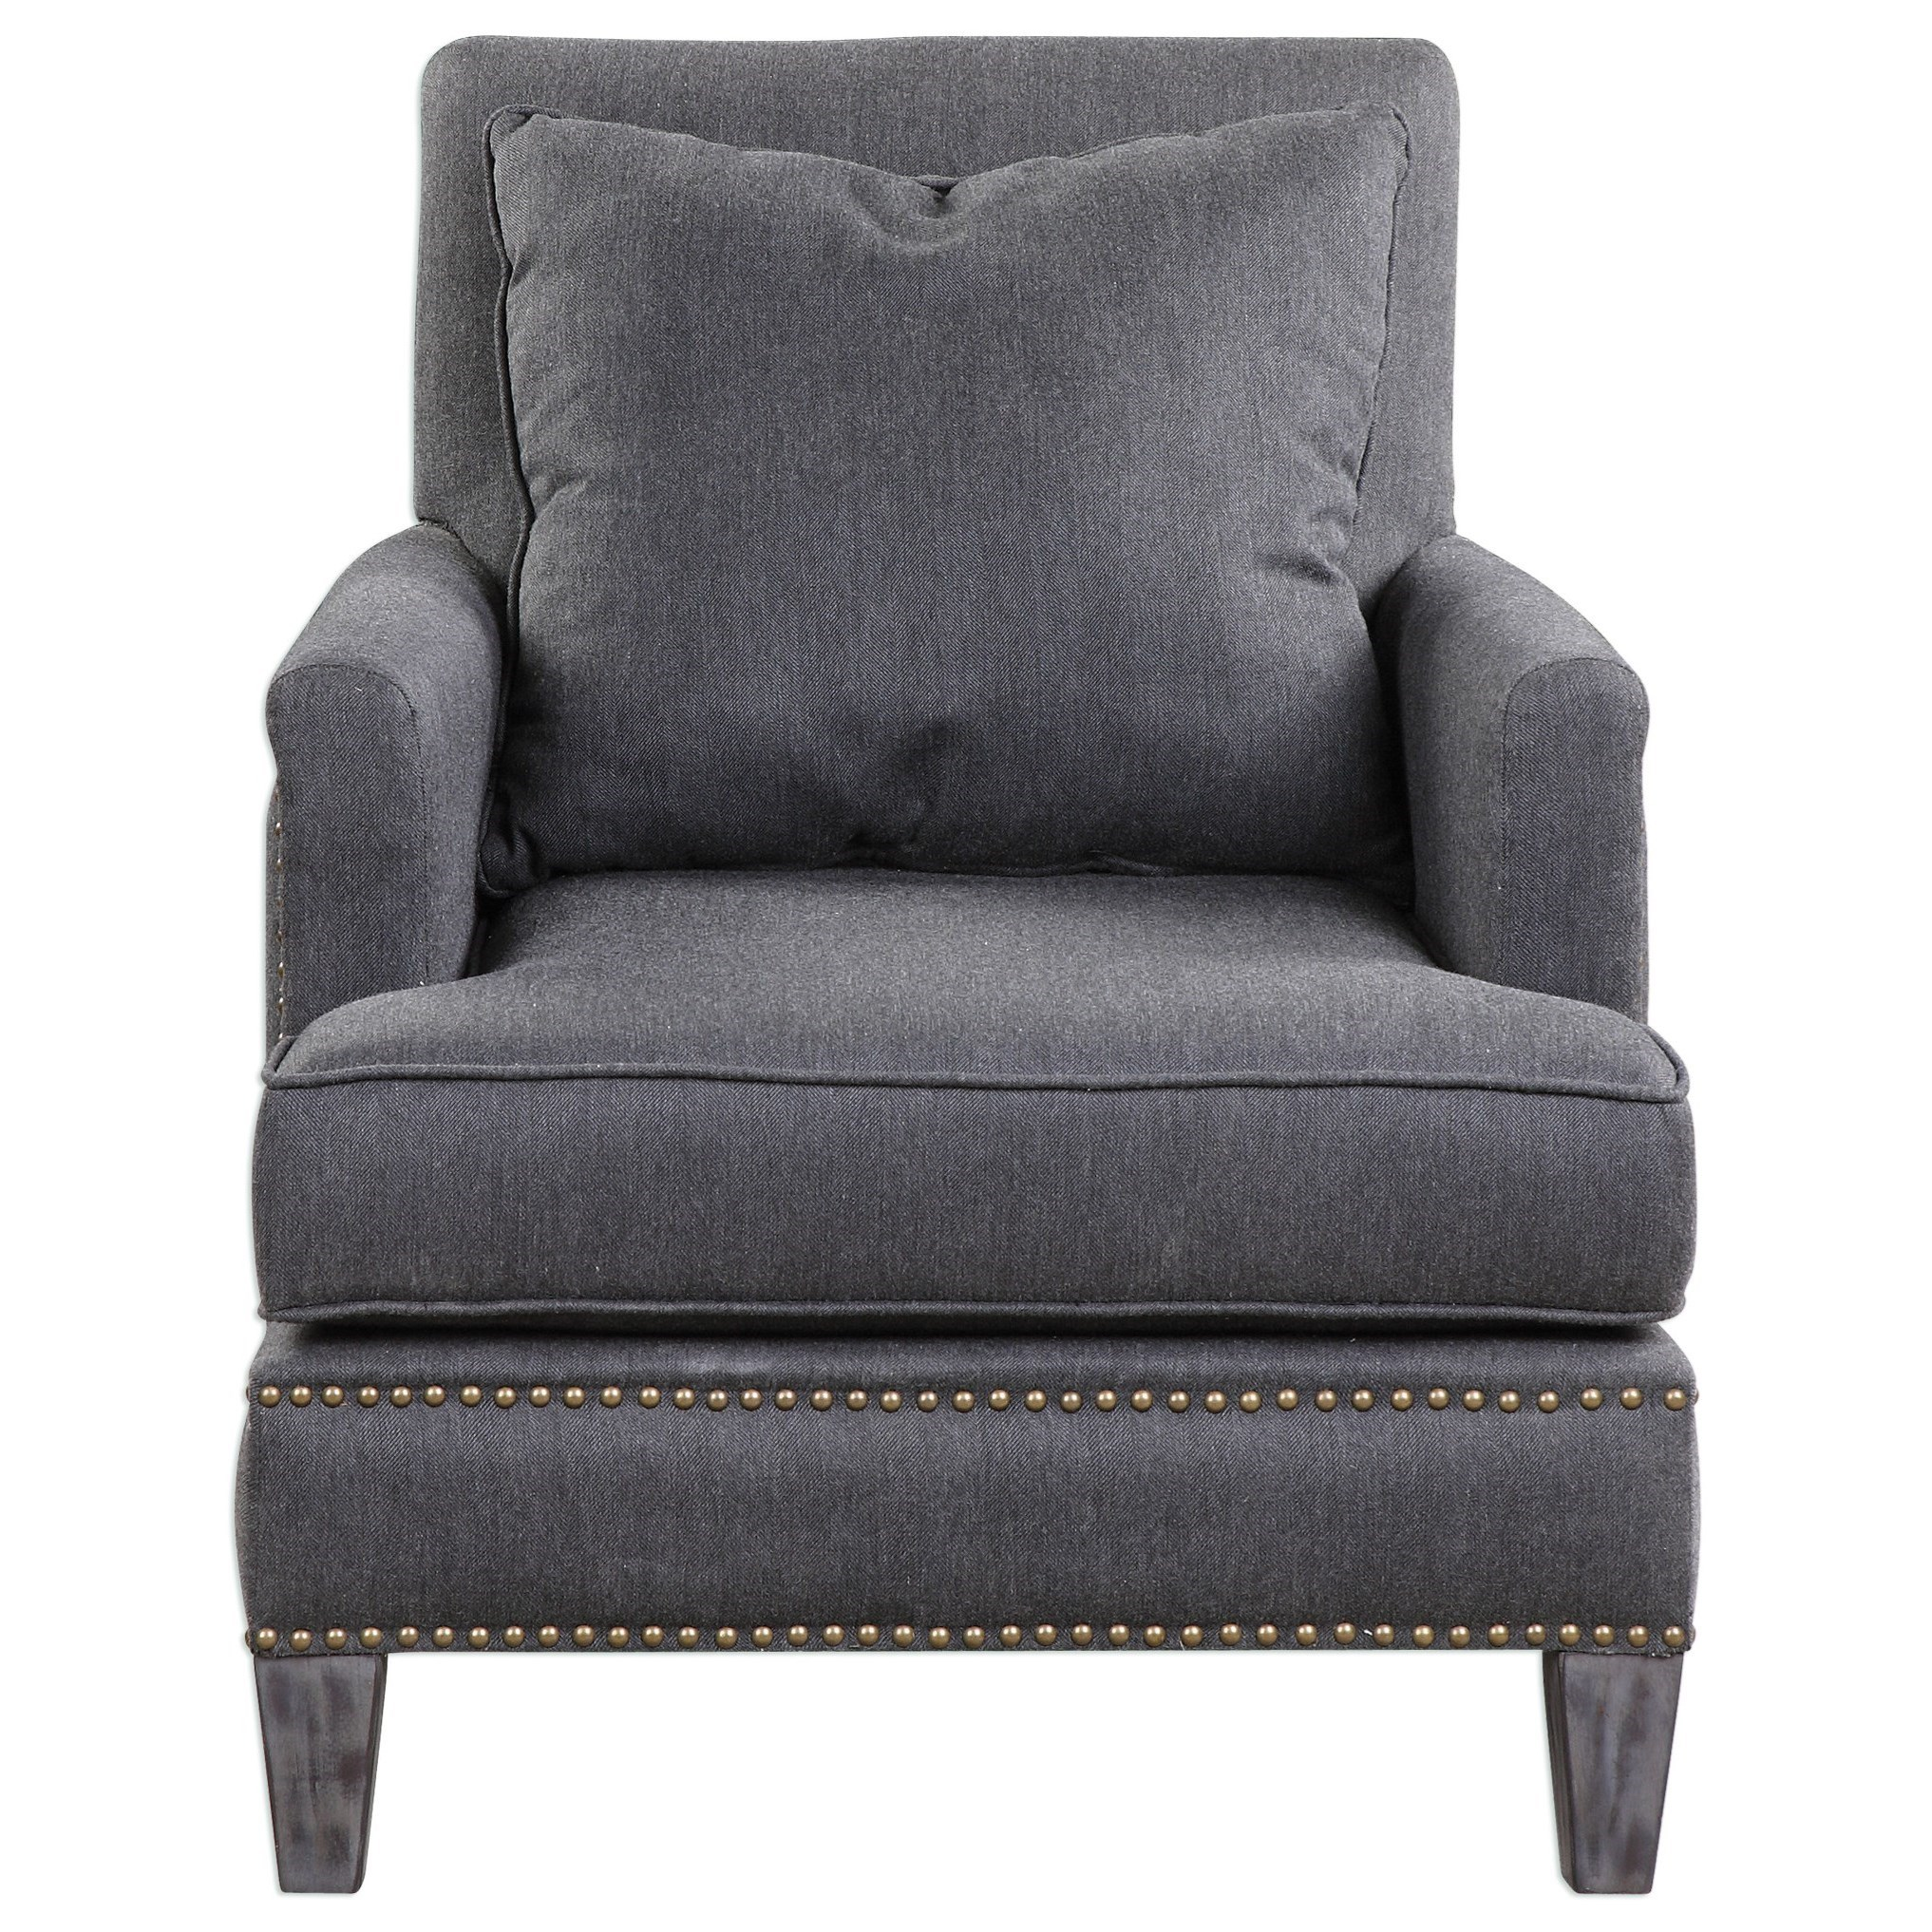 Accent Furniture - Accent Chairs Connolly Armchair by Uttermost at Furniture Superstore - Rochester, MN